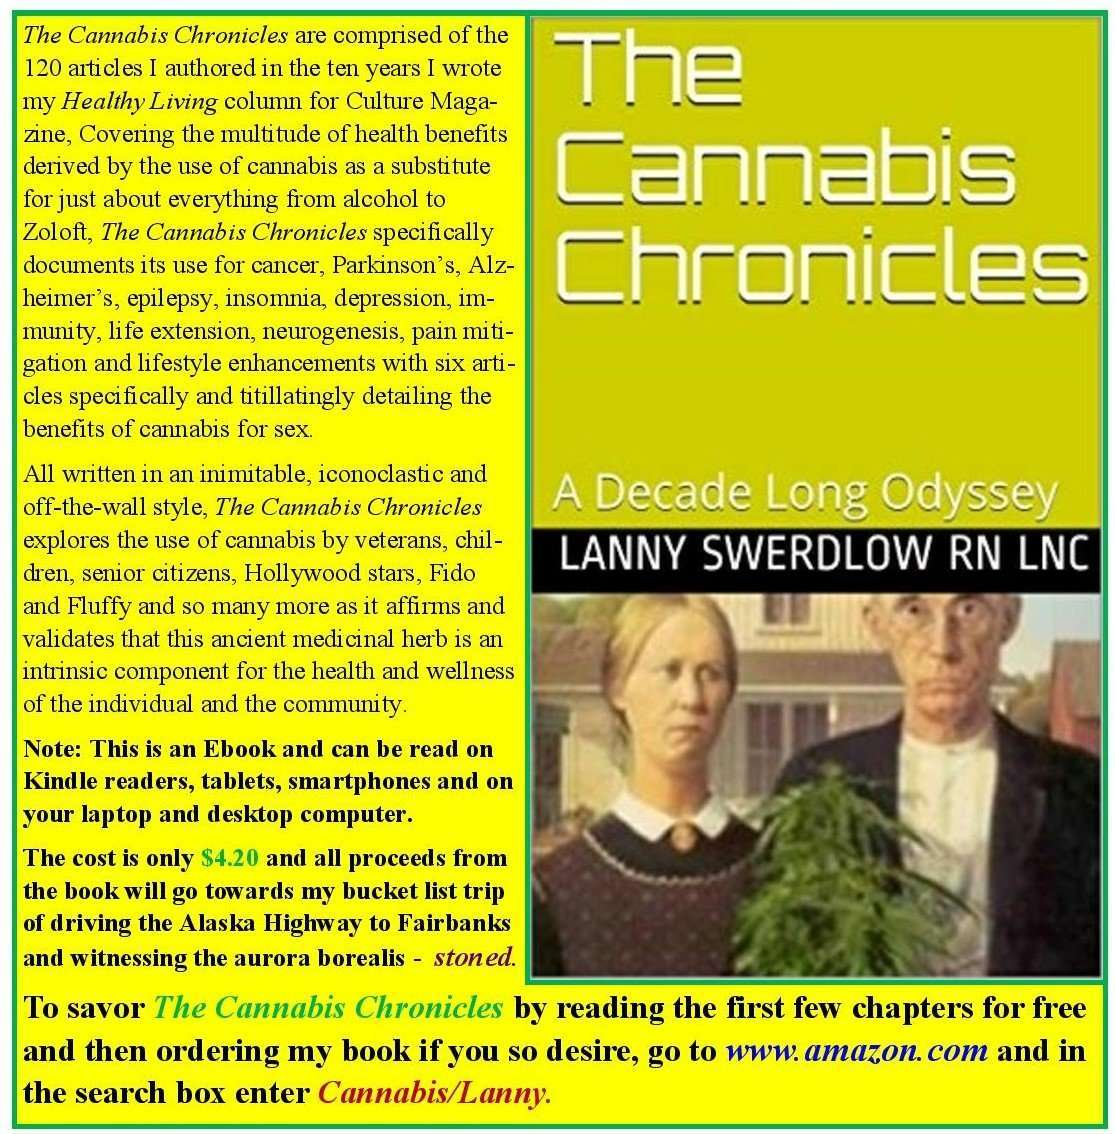 The Cannabis Chronicles by Lanny Swerdlow, RN, LNC